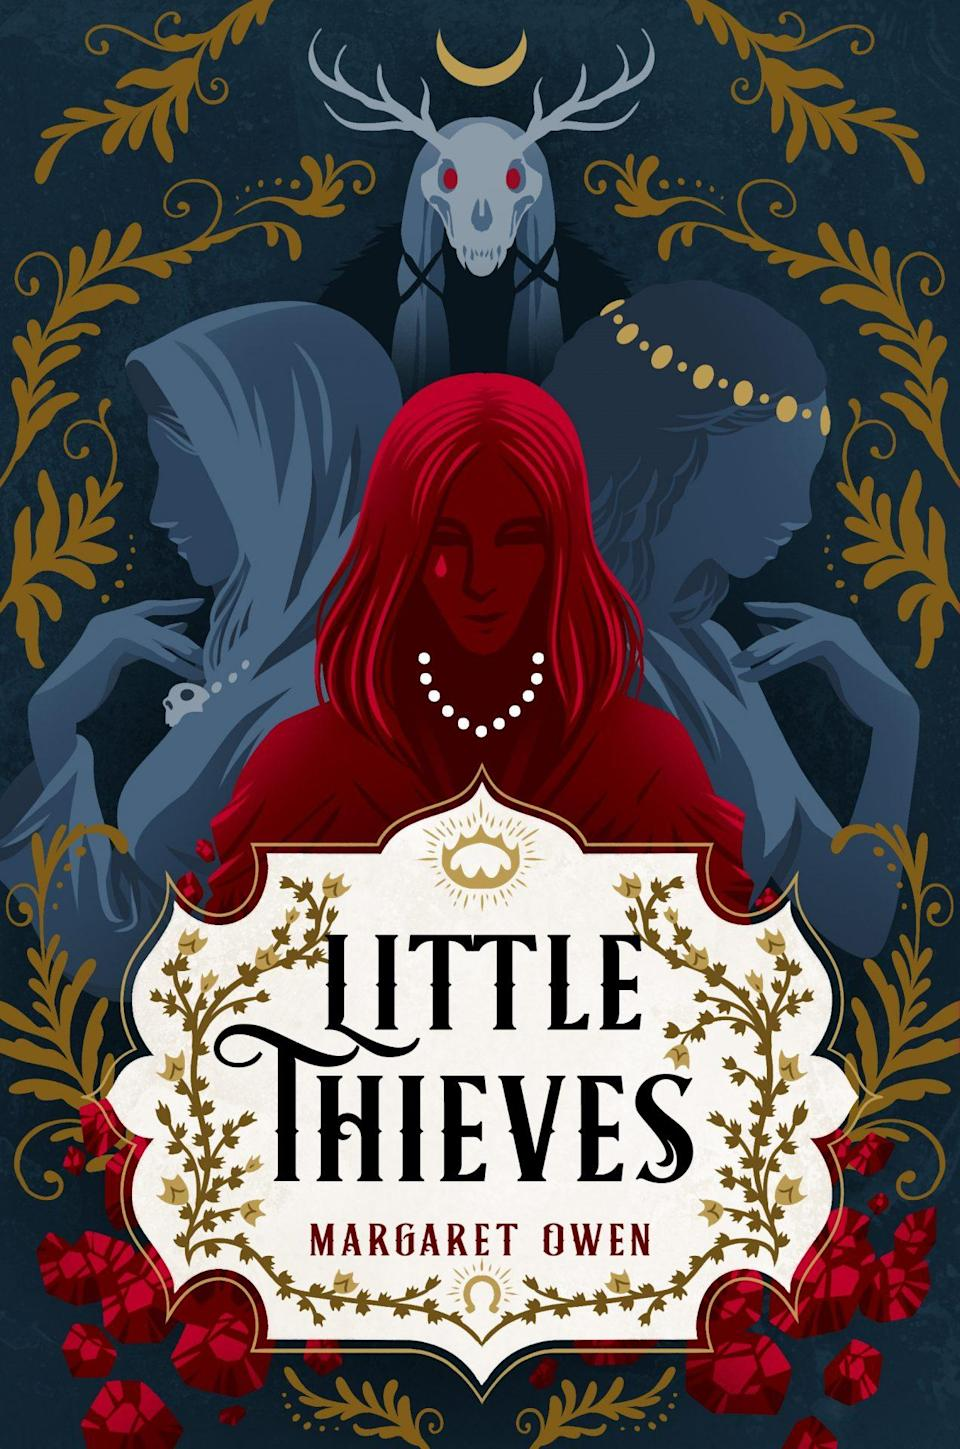 The Little Thieves cover featuring three women in red and blue silhouettes